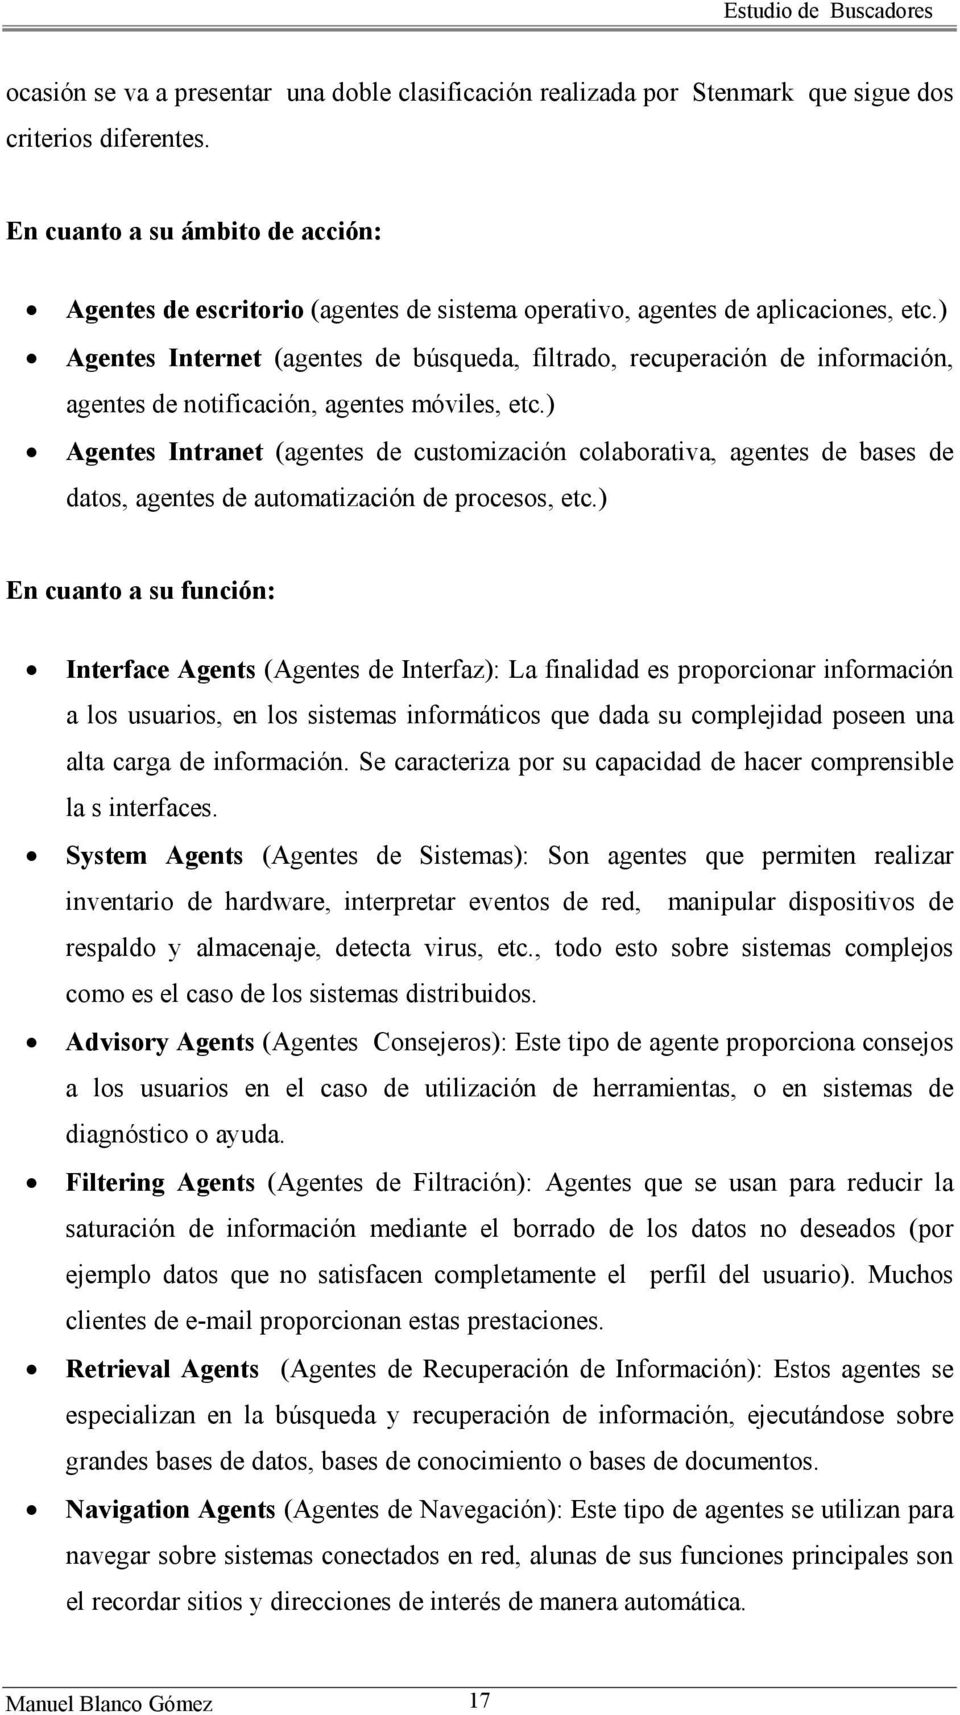 Contemporáneo Ingeniero Civil Reanudar Ejemplos Pdf Ideas ...